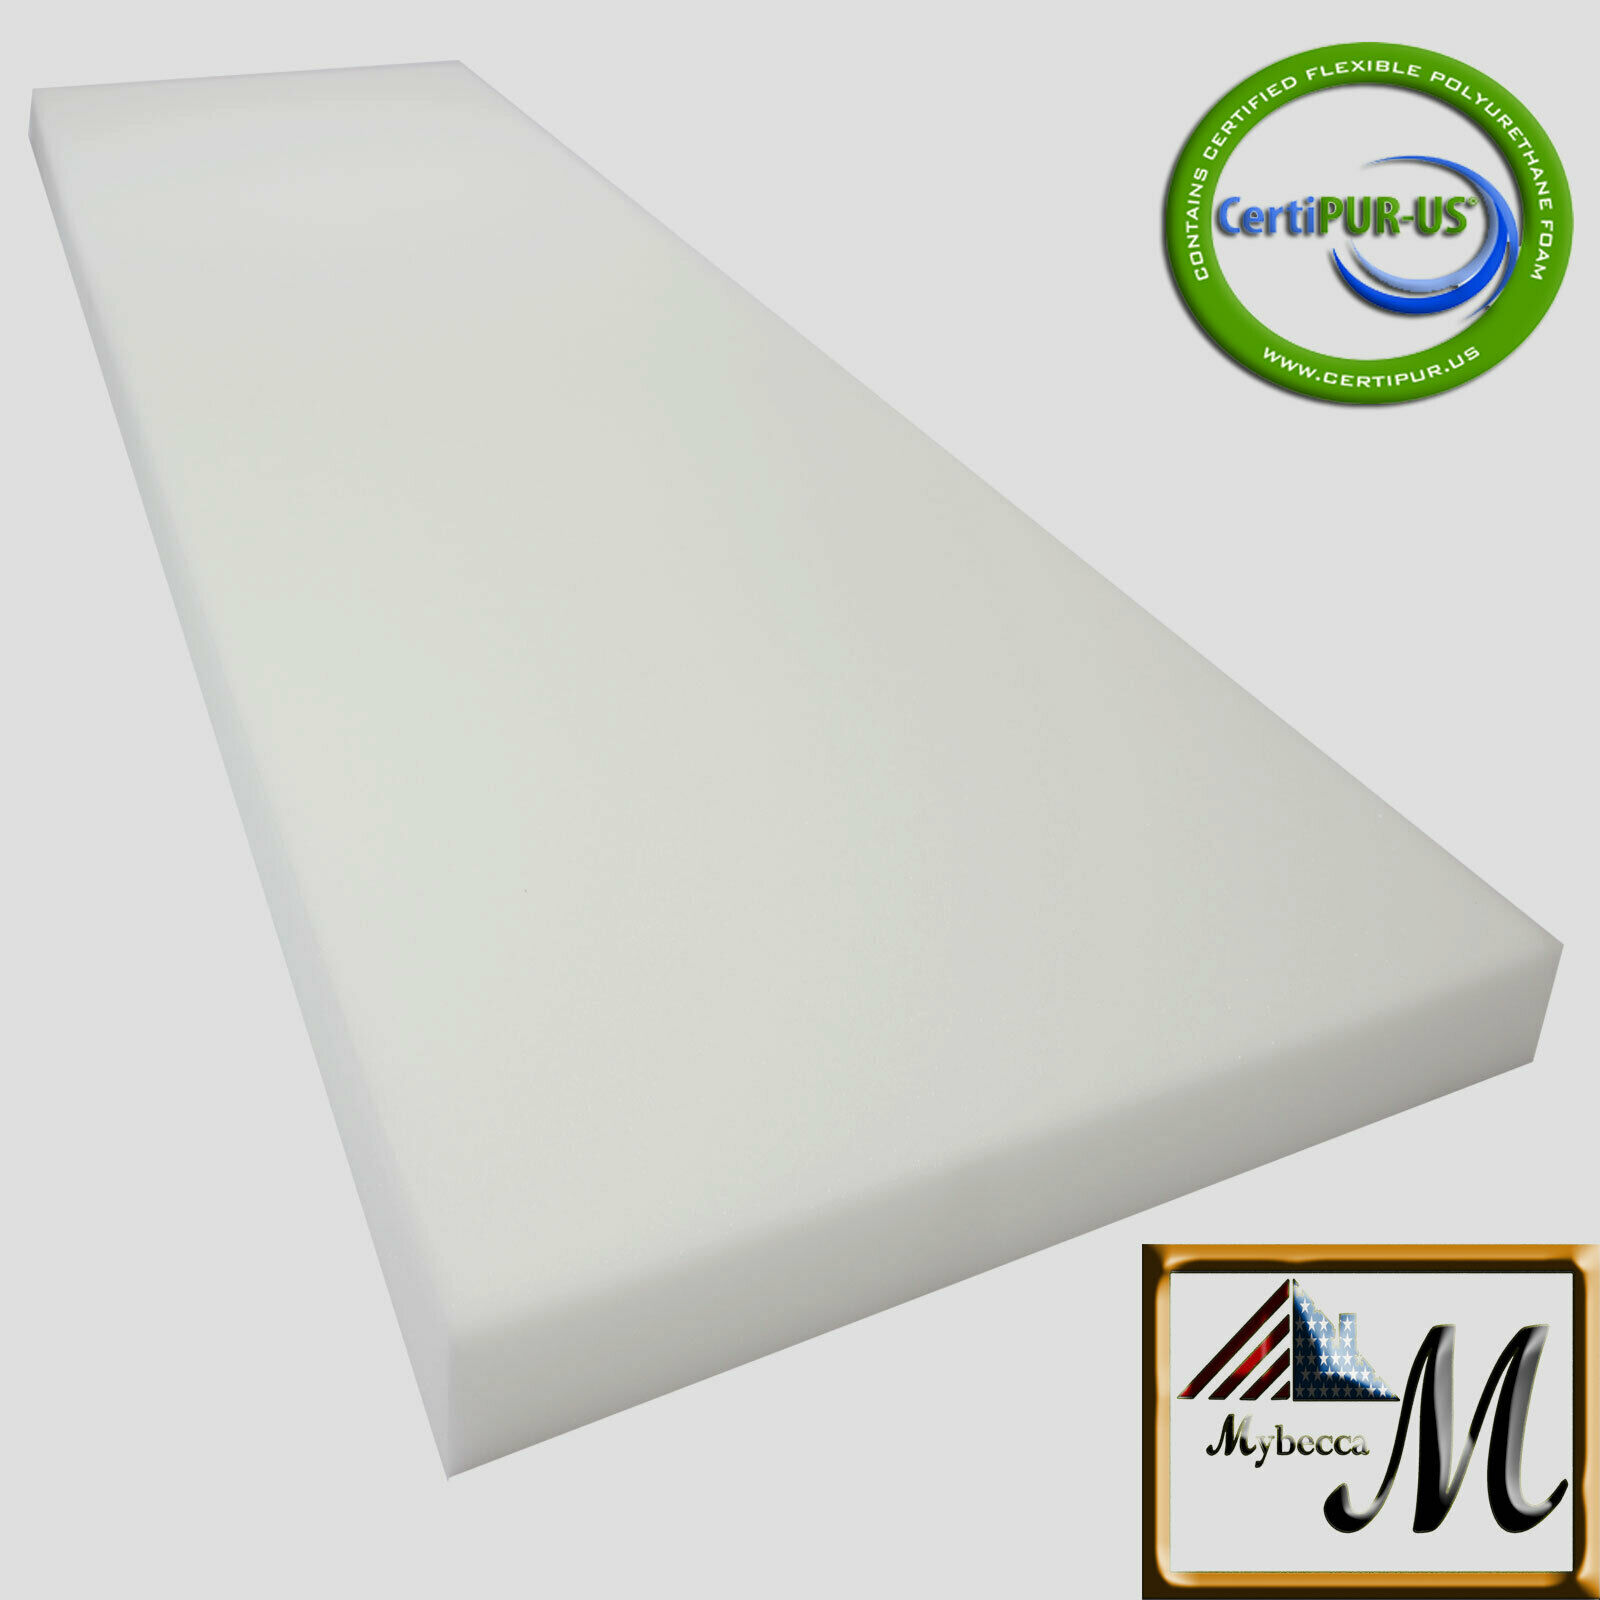 Picture of: Outdoor Canvas Bench Cushion 6 Feet 72 Inch Wide X 19 Inch Deep 2 1 2 Inch Thick For Sale Online Ebay